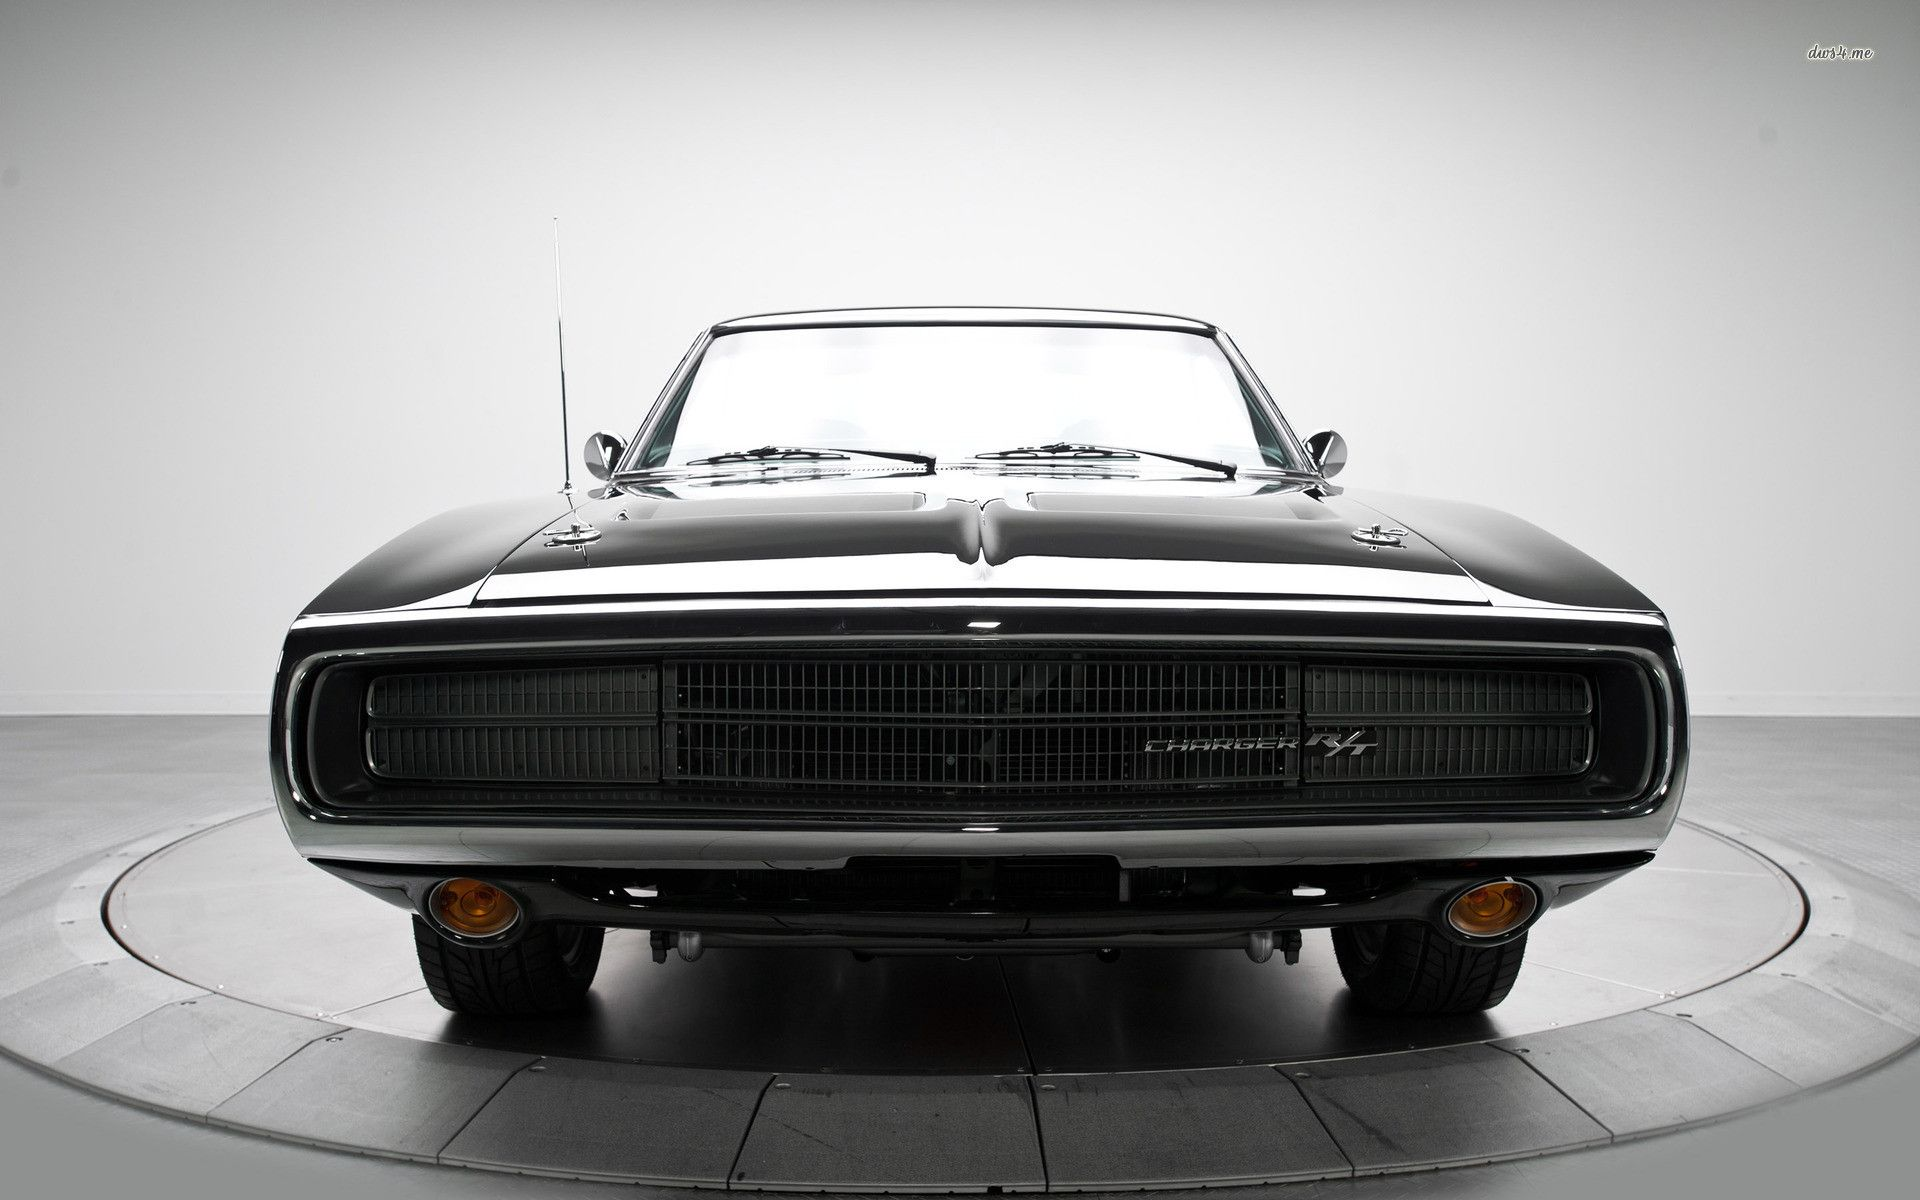 Dodge charger wallpapers full hd wallpaper search carstopgear